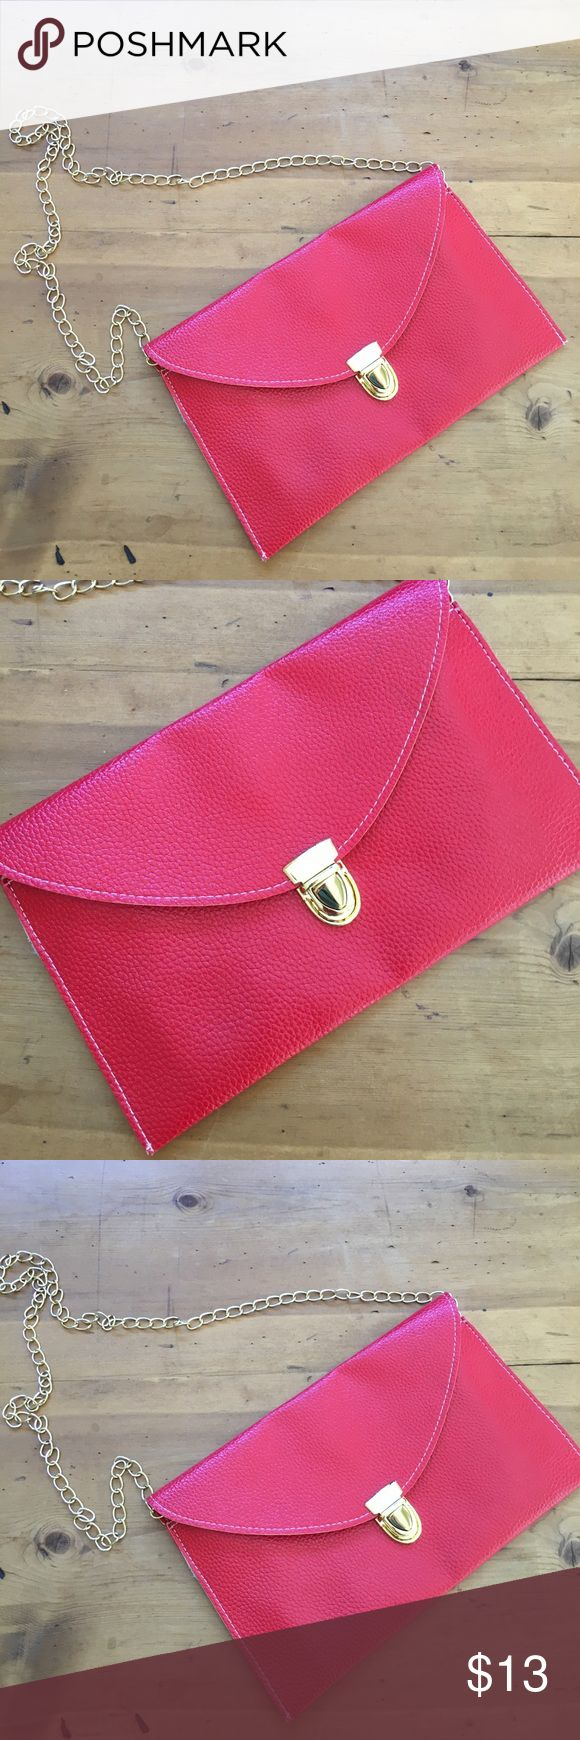 🍀Red Clutch or Crossbody Bag Great condition lightweight simple gold hardware interior clean and spotless buckle outside and magnetic closure inside  26 inches long including chain 7 inches deep 11 inches wide no rips tears or stains non-smoking environment💕 Bags Clutches & Wristlets